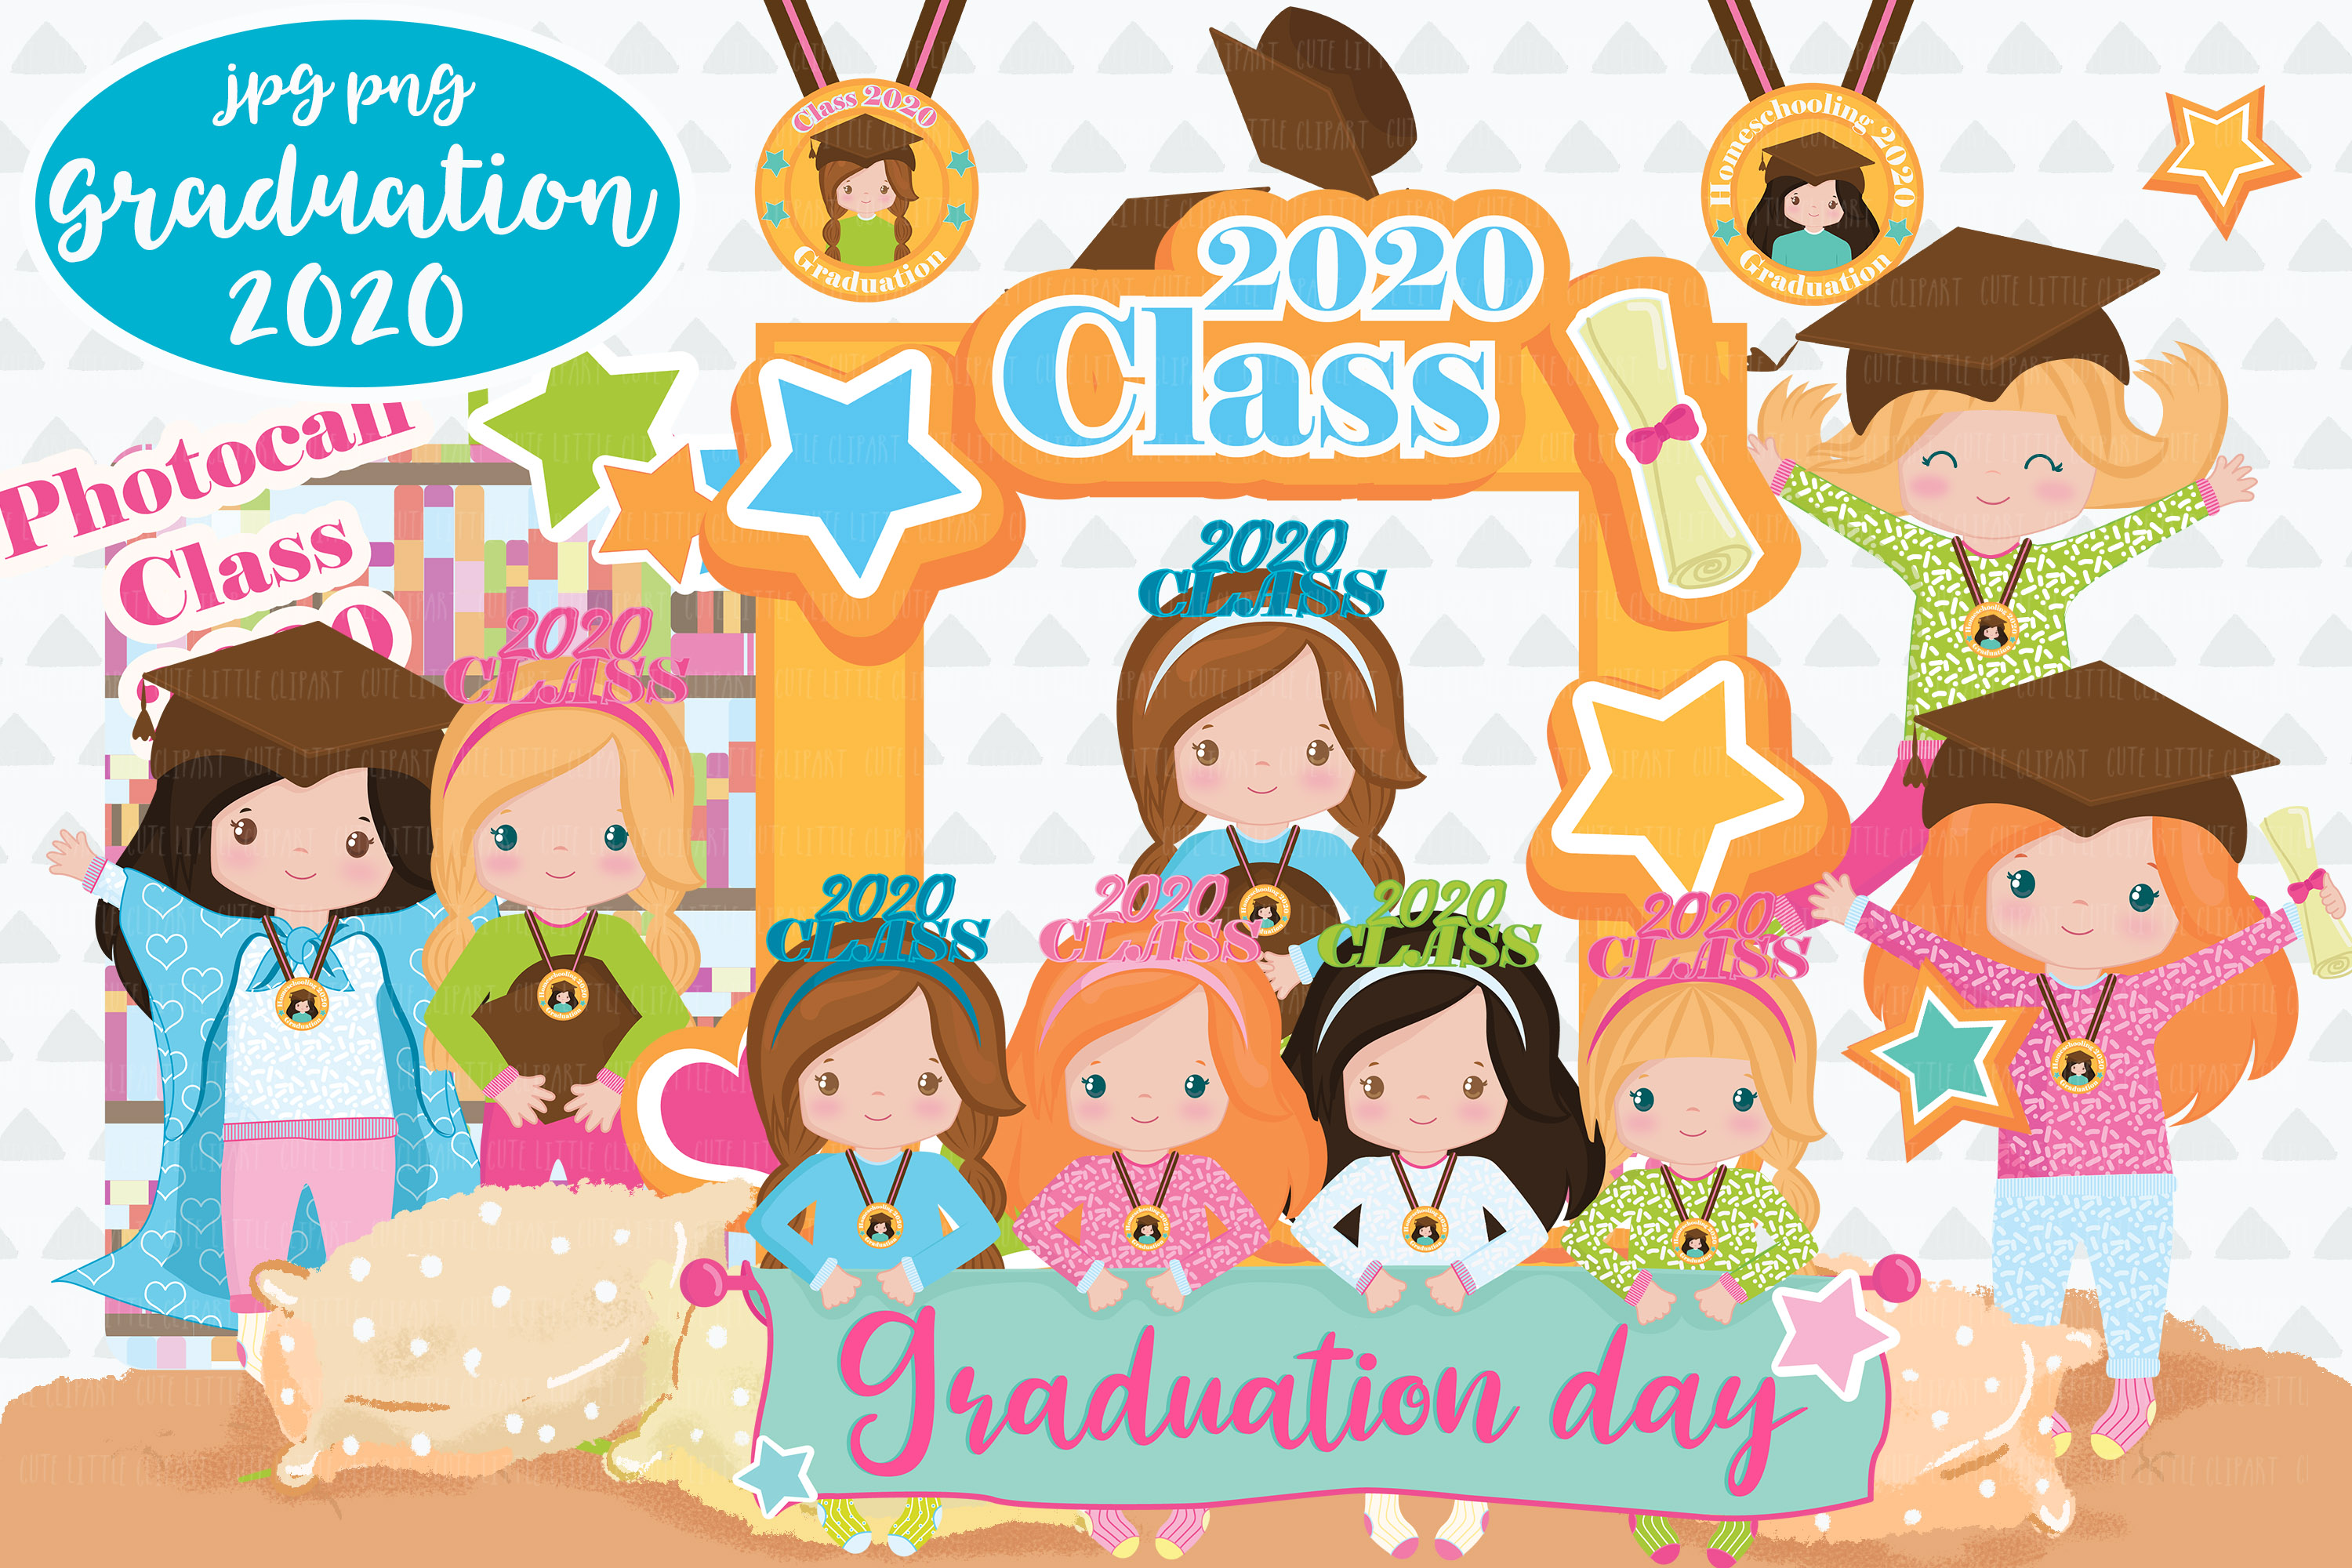 Download Free Graduation Girls 2020 Clipart Graphic By Cutelittleclipart for Cricut Explore, Silhouette and other cutting machines.